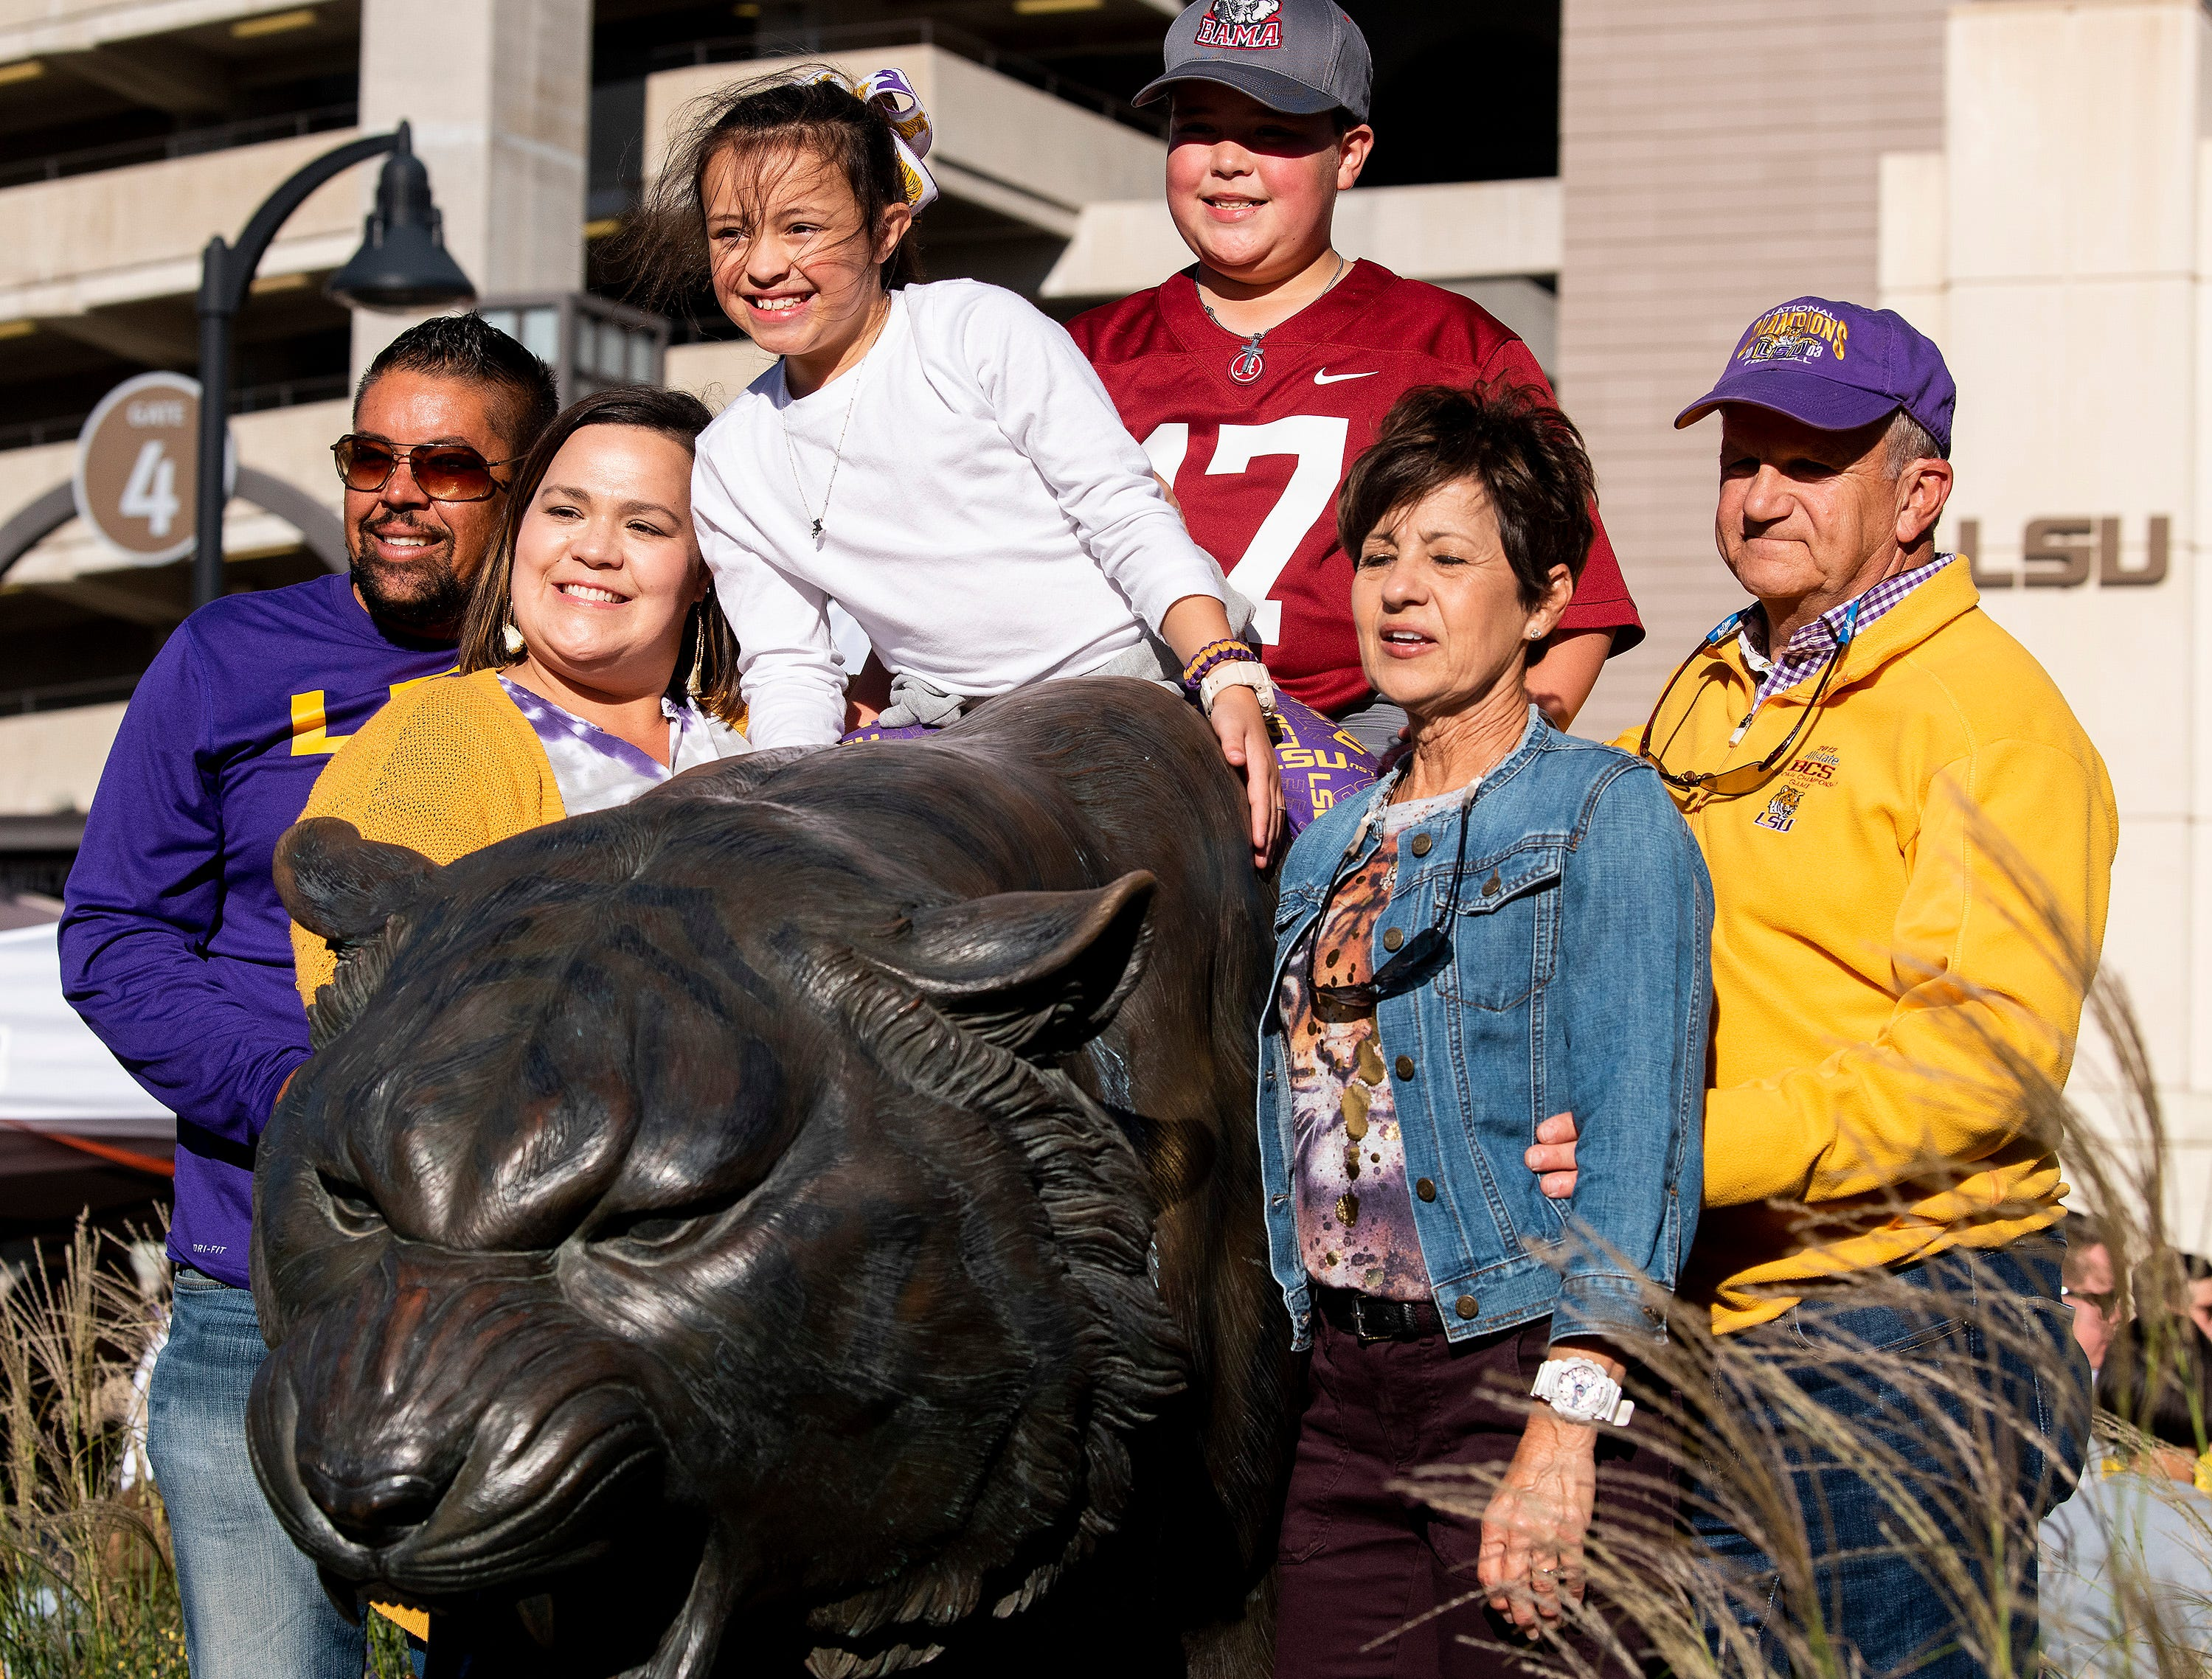 A family poses with the tiger before the Alabama vs. Louisiana State football game at Tiger Stadium in Baton Rouge, La., on Saturday November 3, 2018.